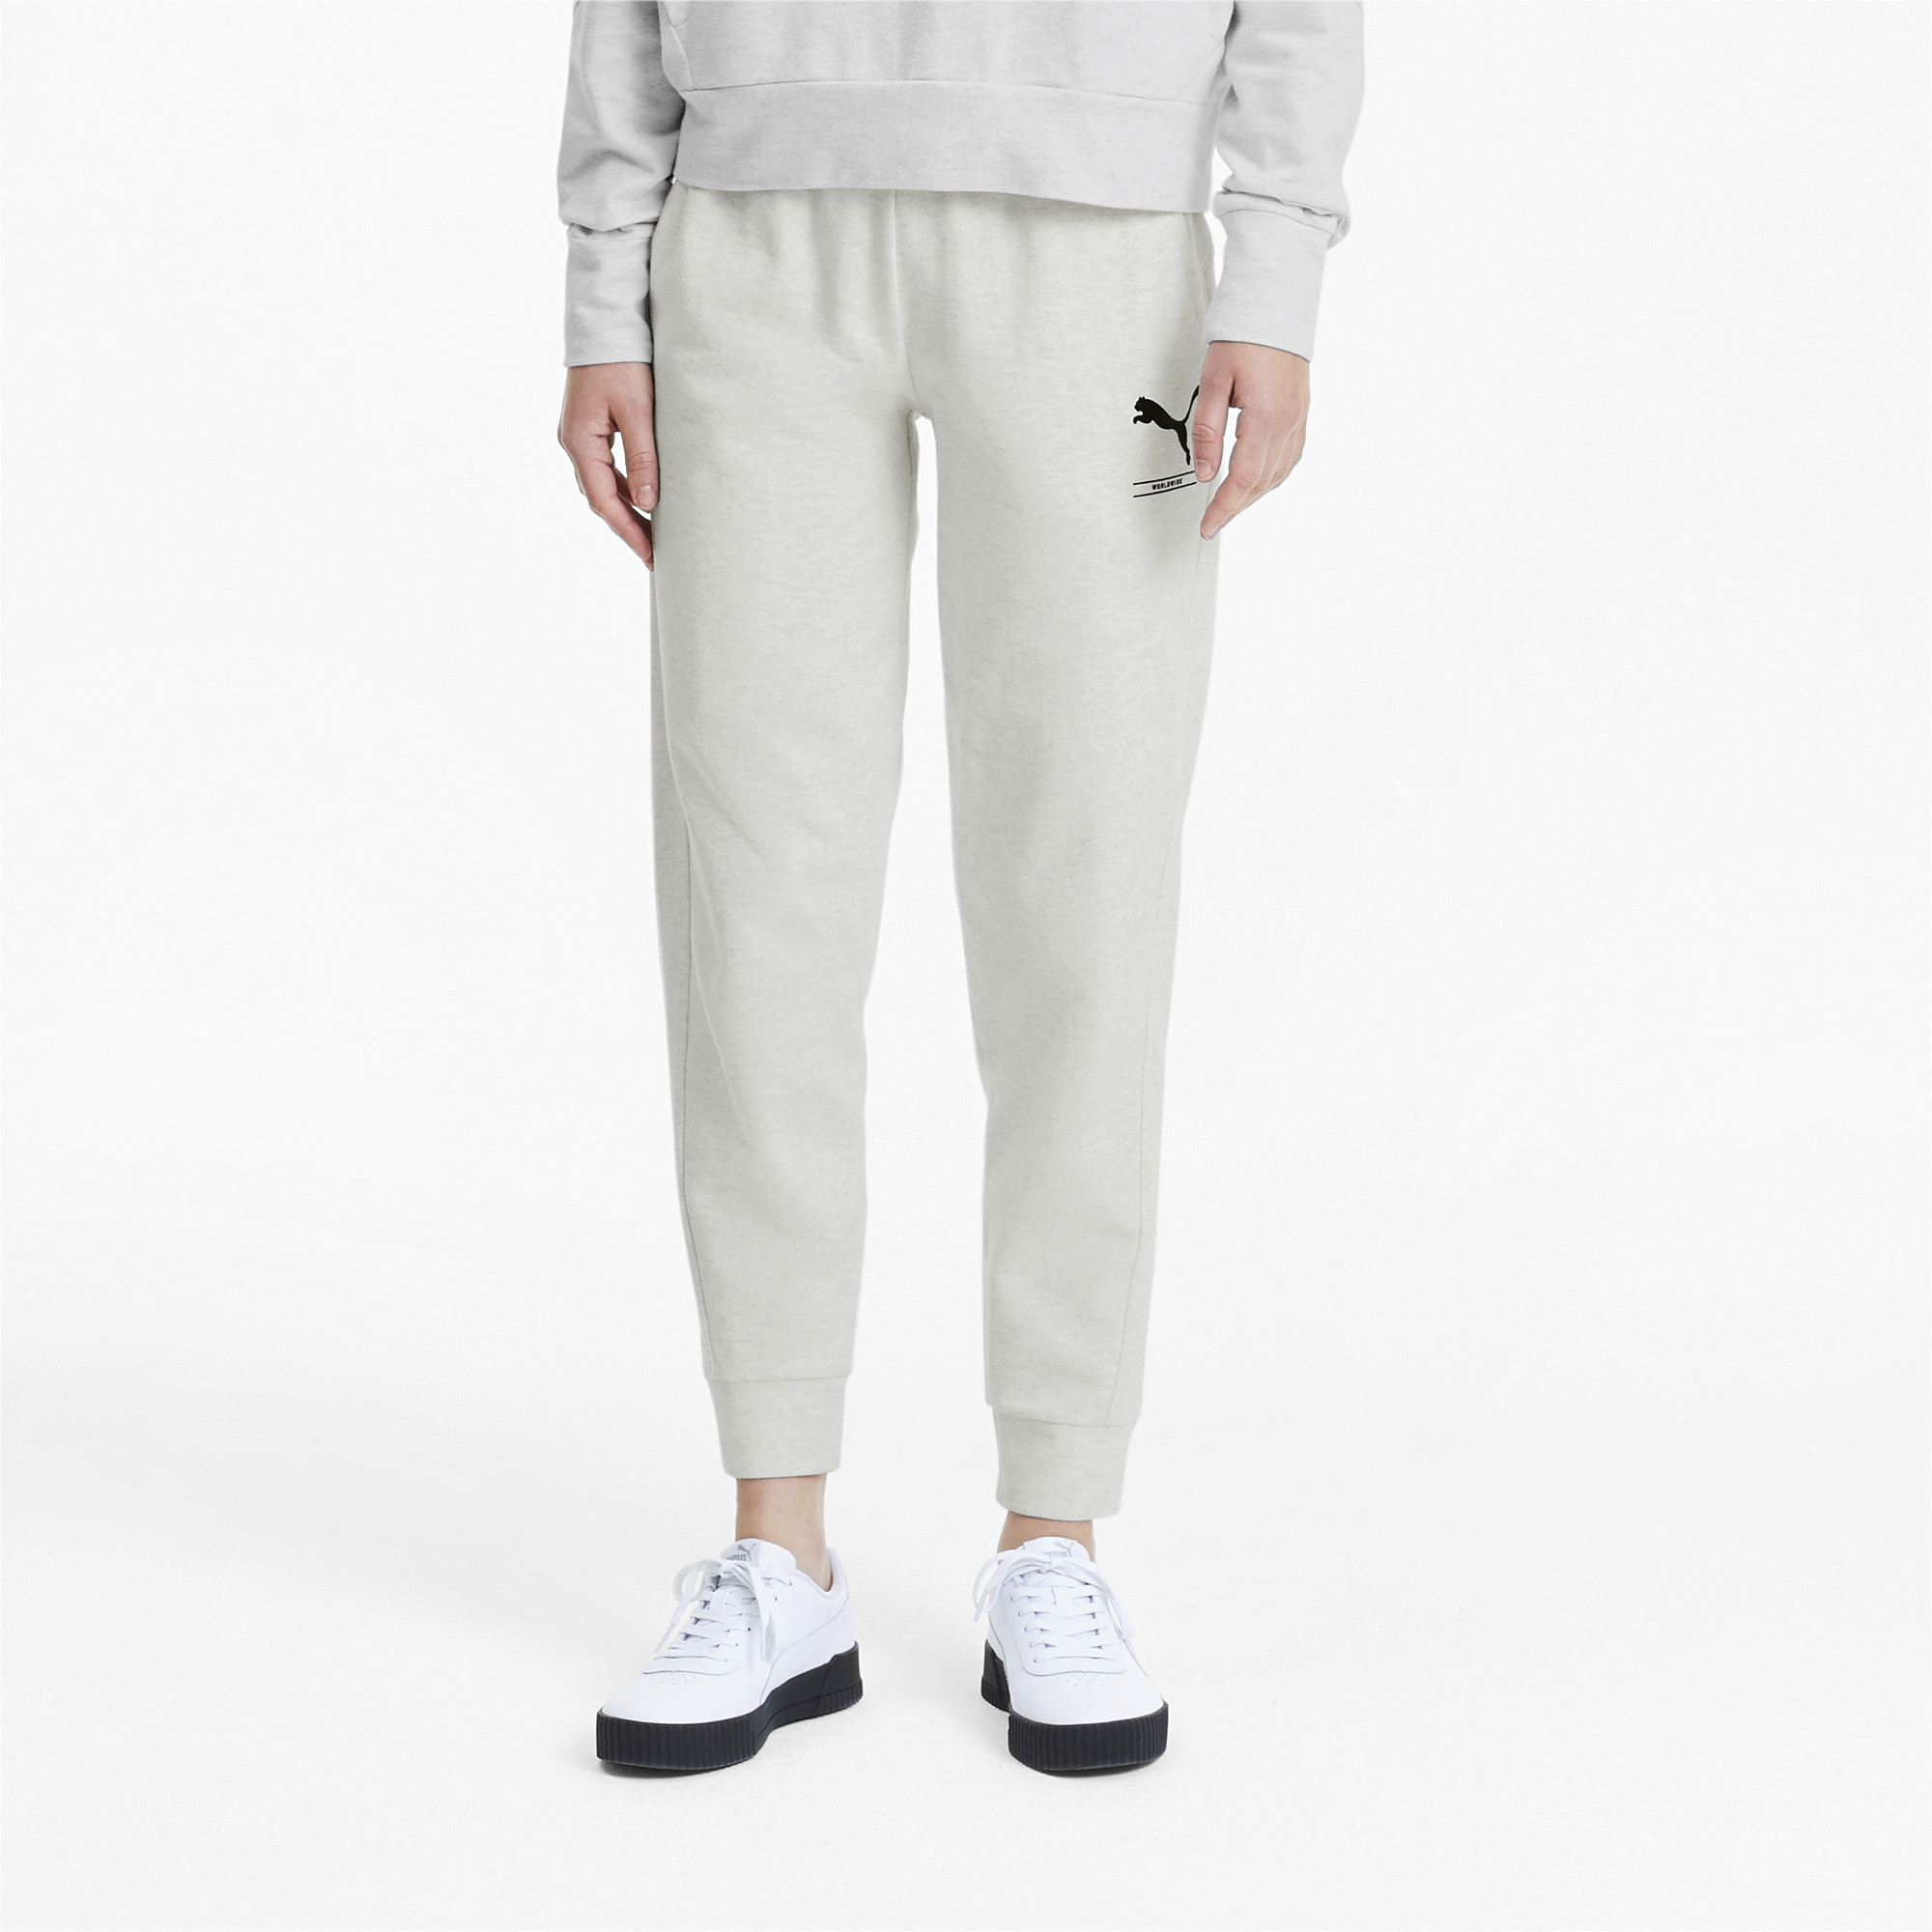 PUMA-Women-039-s-NU-TILITY-Sweatpants thumbnail 4